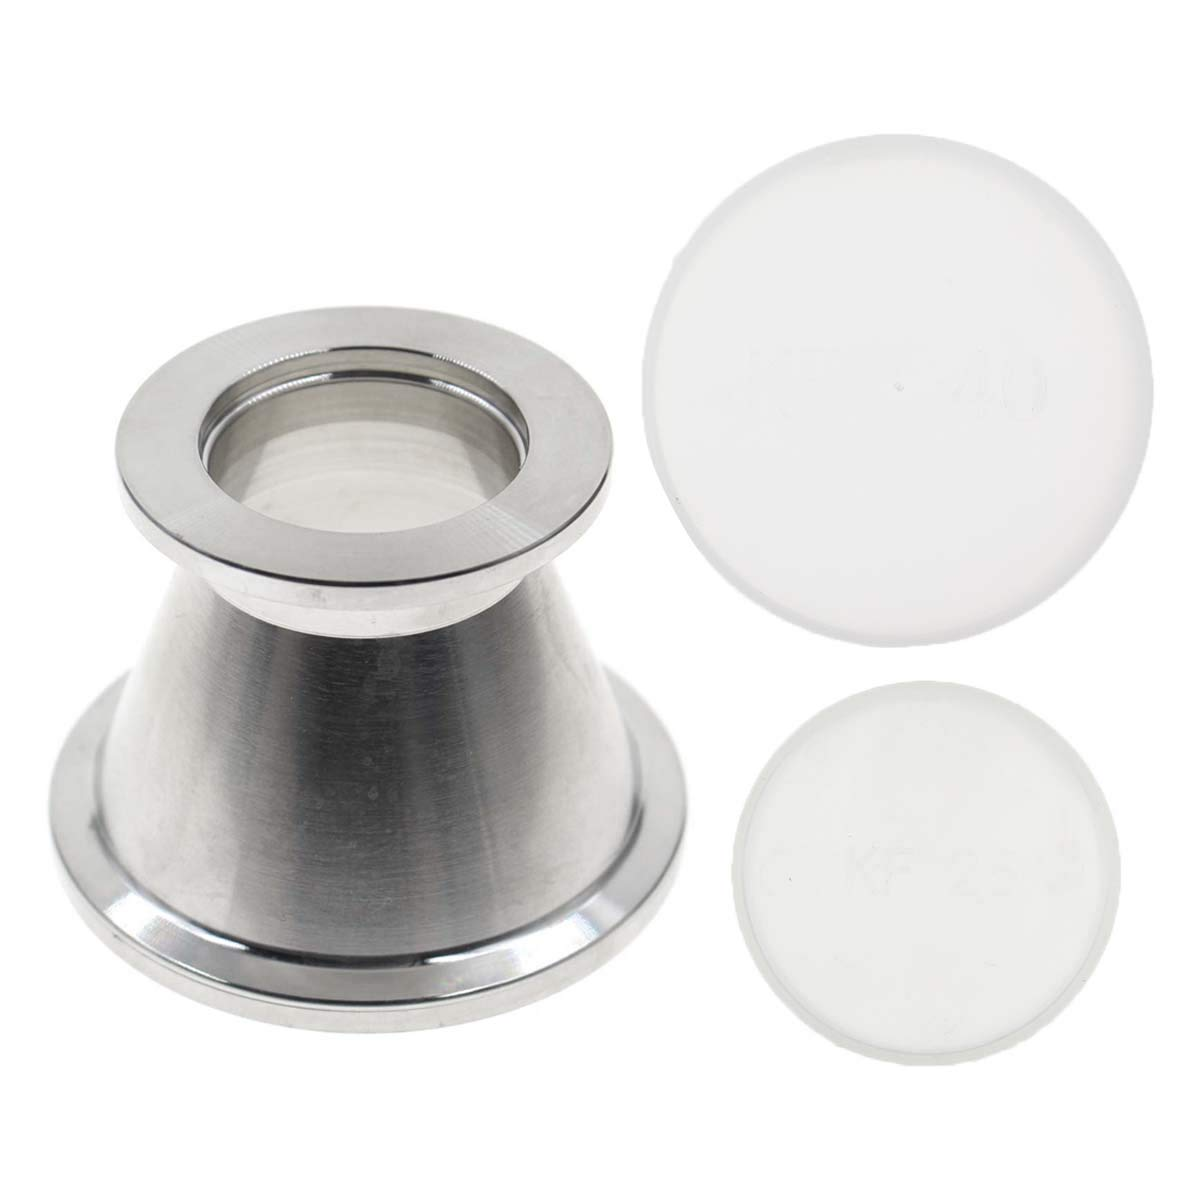 AUTOKAY Stainless Steel KF-40 (NW-40) to KF-25 (NW-25) Conical Reducer Stainless Steel Vacuum Conical Reducer Adapter